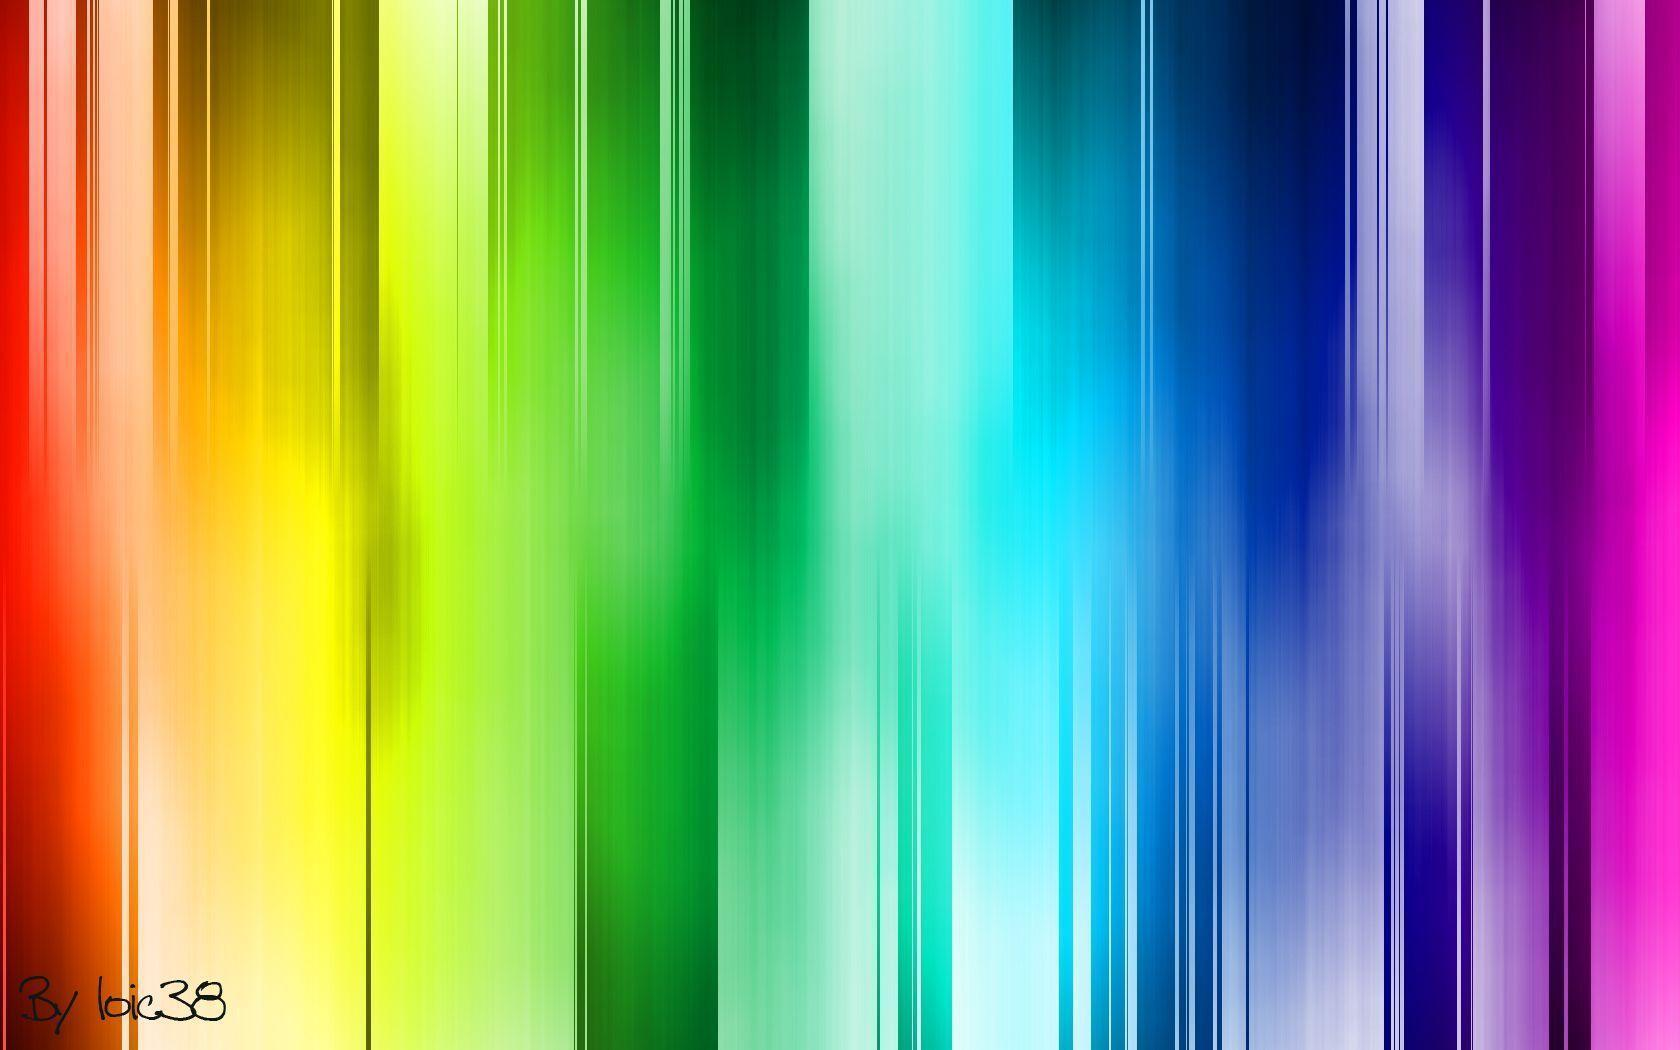 Abstract Backgrounds of Colored Bars by kayller77